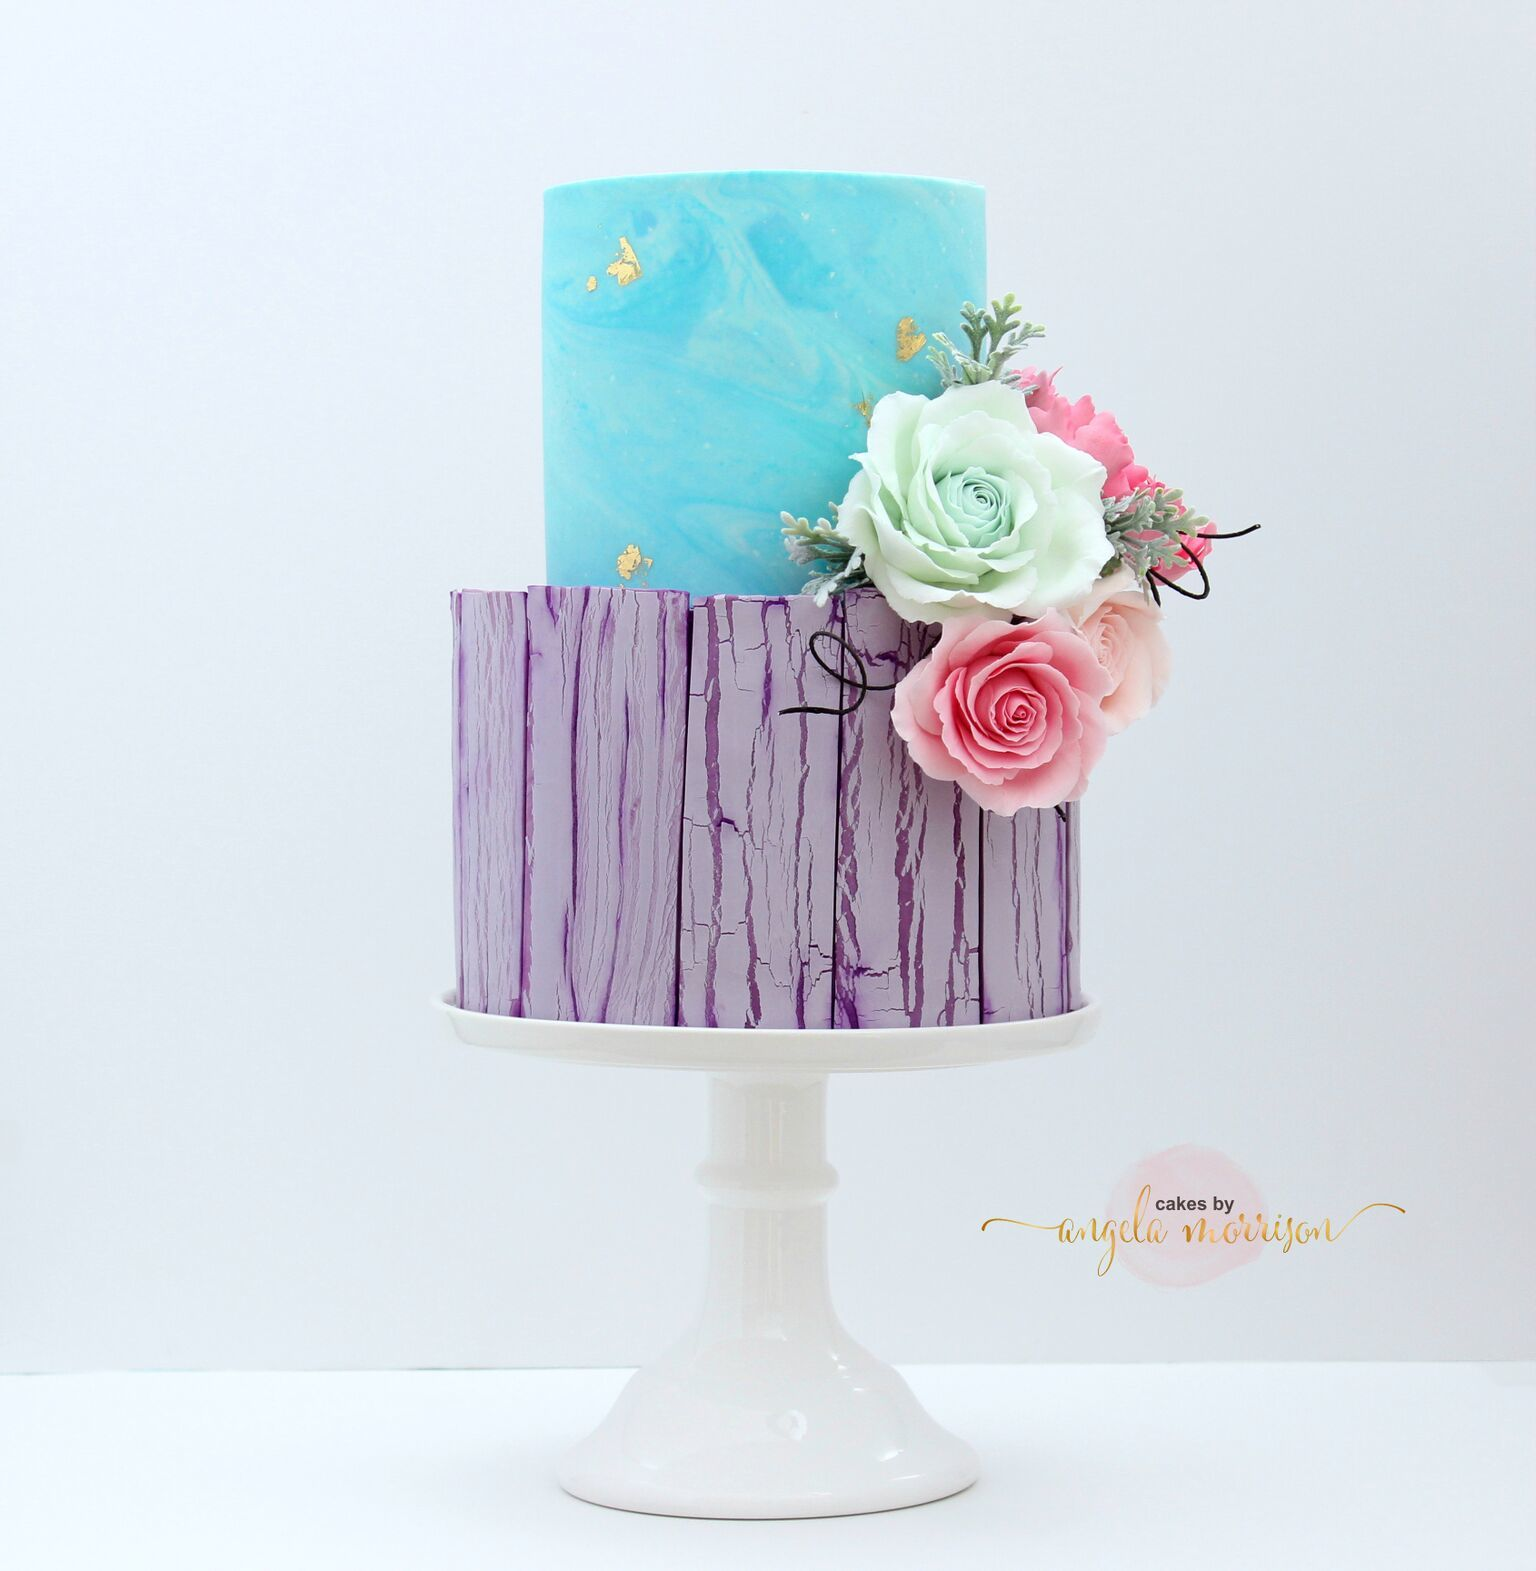 Lavender and blue wedding cake